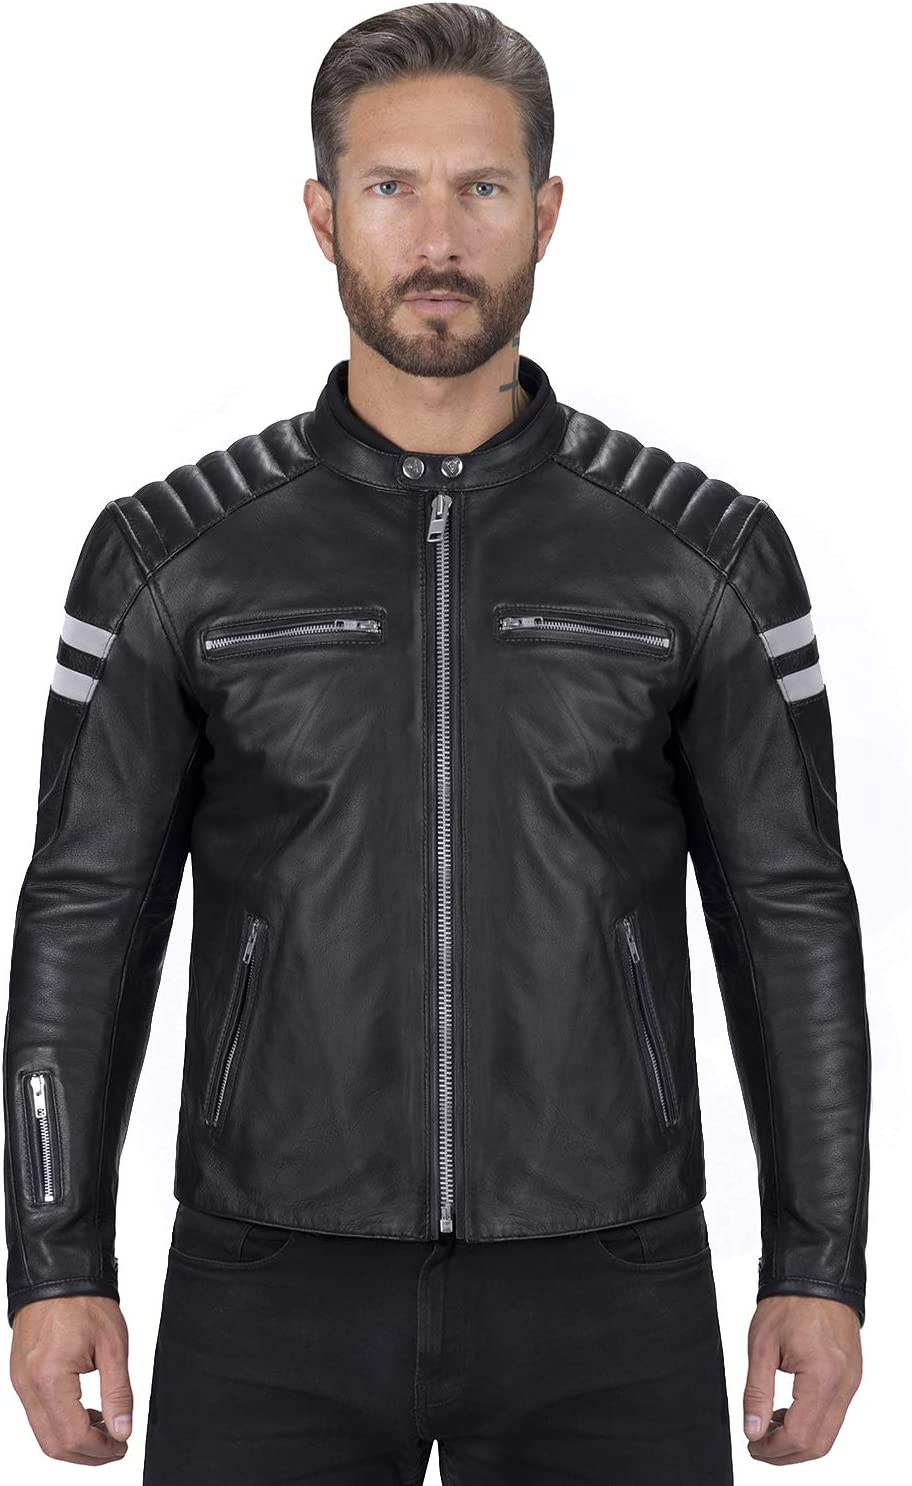 Viking Cycle Bloodaxe Leather Motorcycle Jacket for Men Black, XX-Large